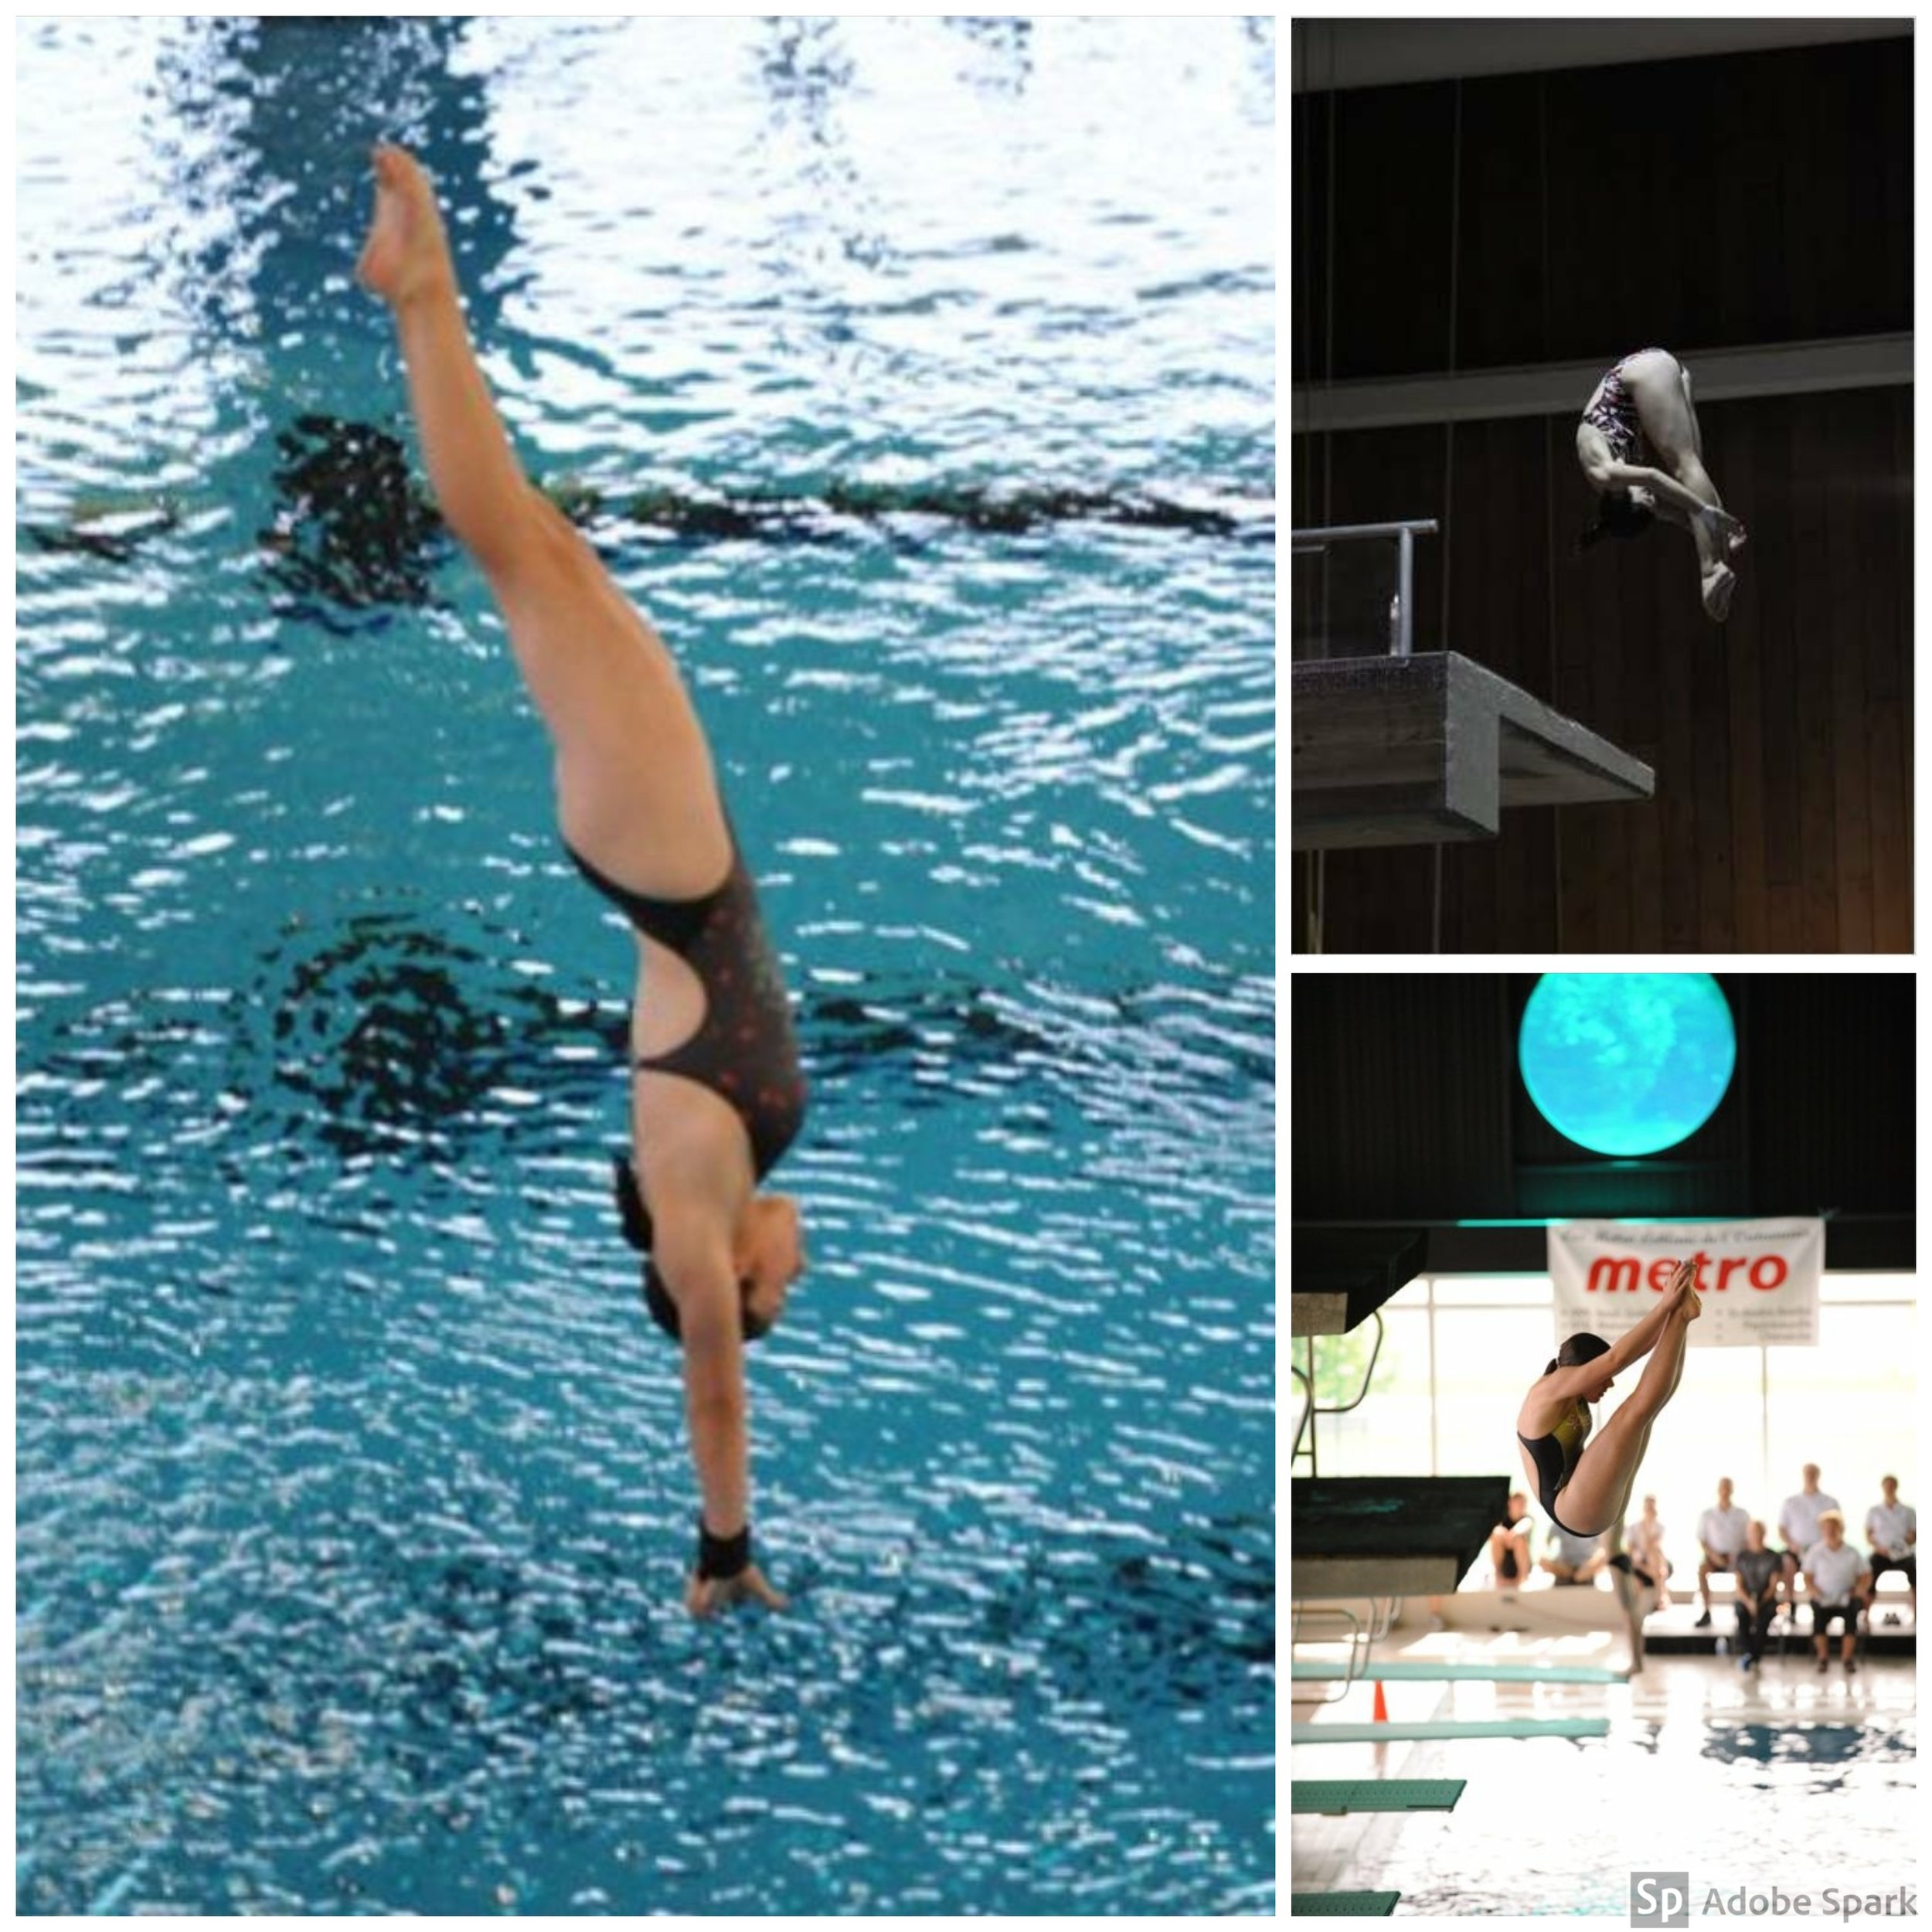 Dawn Turner - I started diving with NODC in 2000 when I was five years old. Diving quickly became my favorite sport because of how supportive, kind, and encouraging the coaches and other participants were. I had a proud 10 year career with NODC going to Nationals and winning Provincials with my Synchro partner Sarah Mayer. I loved the sport so much that I became a coach working along side Fernando Henderson. For me diving was the best part of my day and even if I was nervous to learn a new dive, my coaches always had faith in me and taught me so much more than just how to do flips. I reflect on my current accomplishments, graduating on an athletic scholarship in golf, and currently becoming a professional golf instructor because of the NODC program.Diving is an unique sport that teaches discipline, strength, mental toughness and most importantly, how to build strong relationships.I am proud to be a NODC alumni and to this day I still help out when I can because of my diving family.